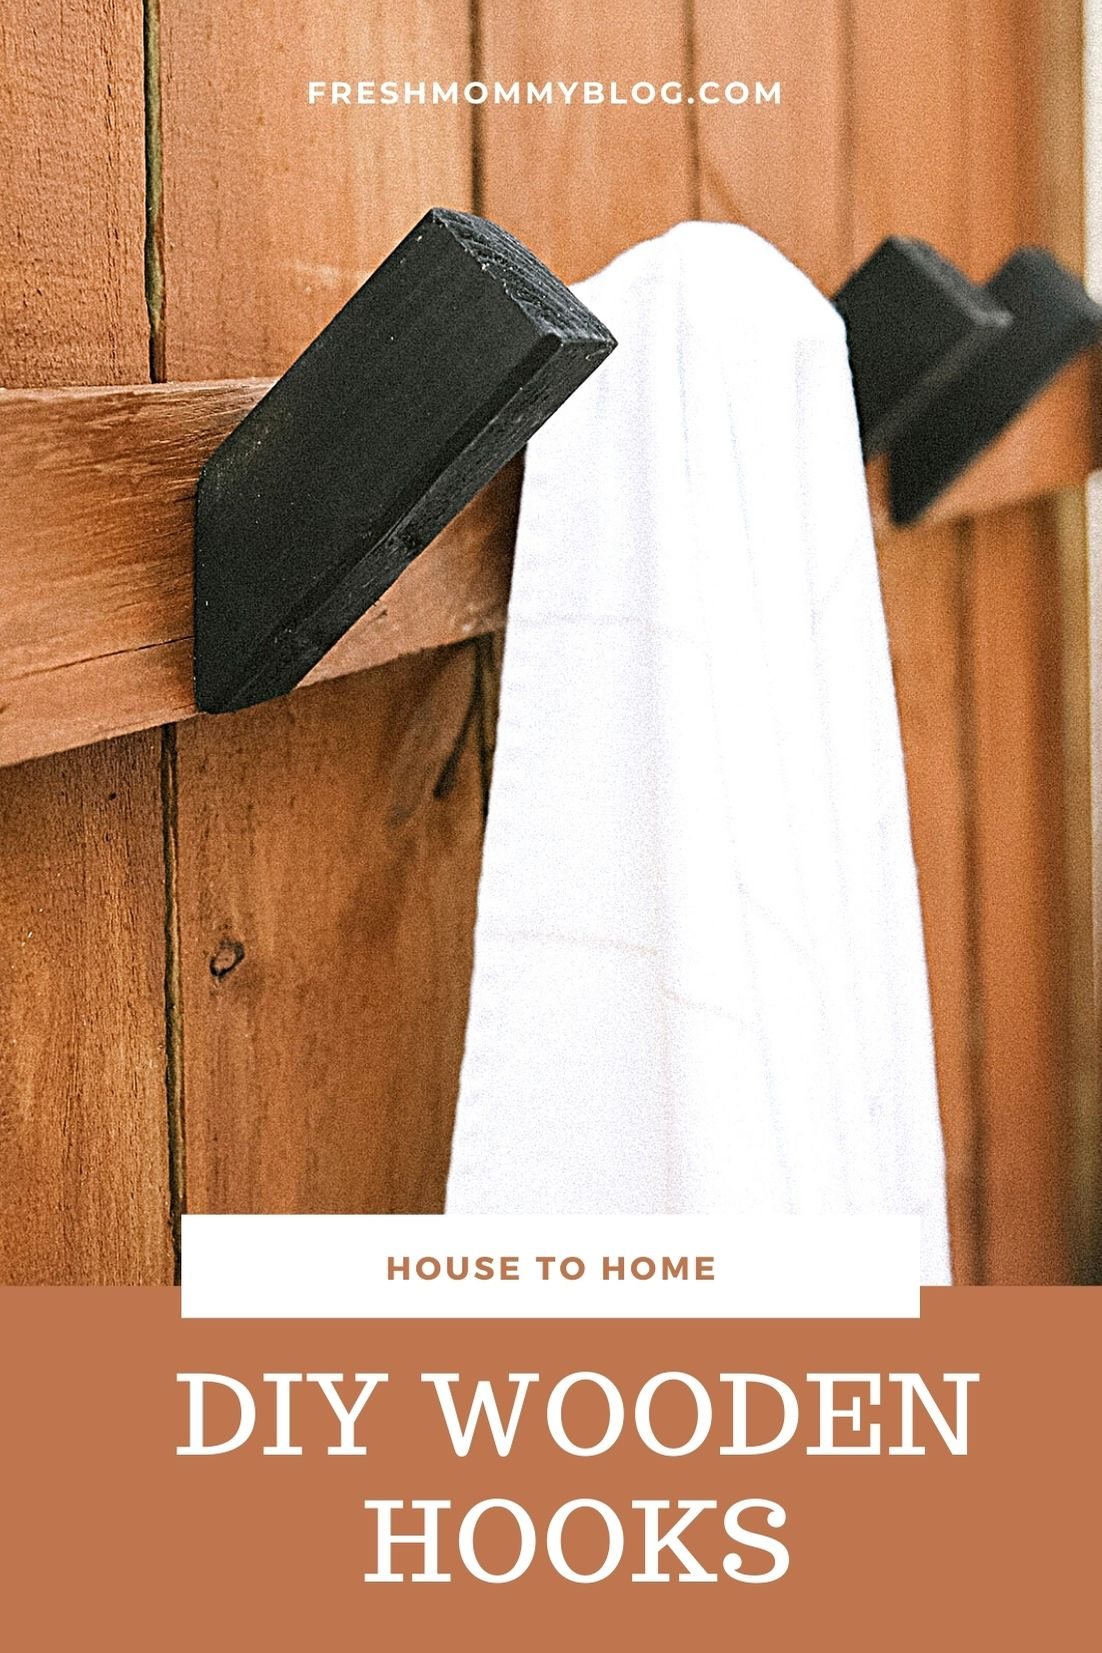 Top US lifestyle blogger Tabitha Blue shares How to Make Modern DIY Wooden Hooks for $1 Each! See the sleek wood hook design in her outdoor shower. | Wooden Hooks by popular Florida lifestyle blog, Fresh Mommy Blog: image of a white towel hanging on a wood hook that's mounted in a outdoor shower.